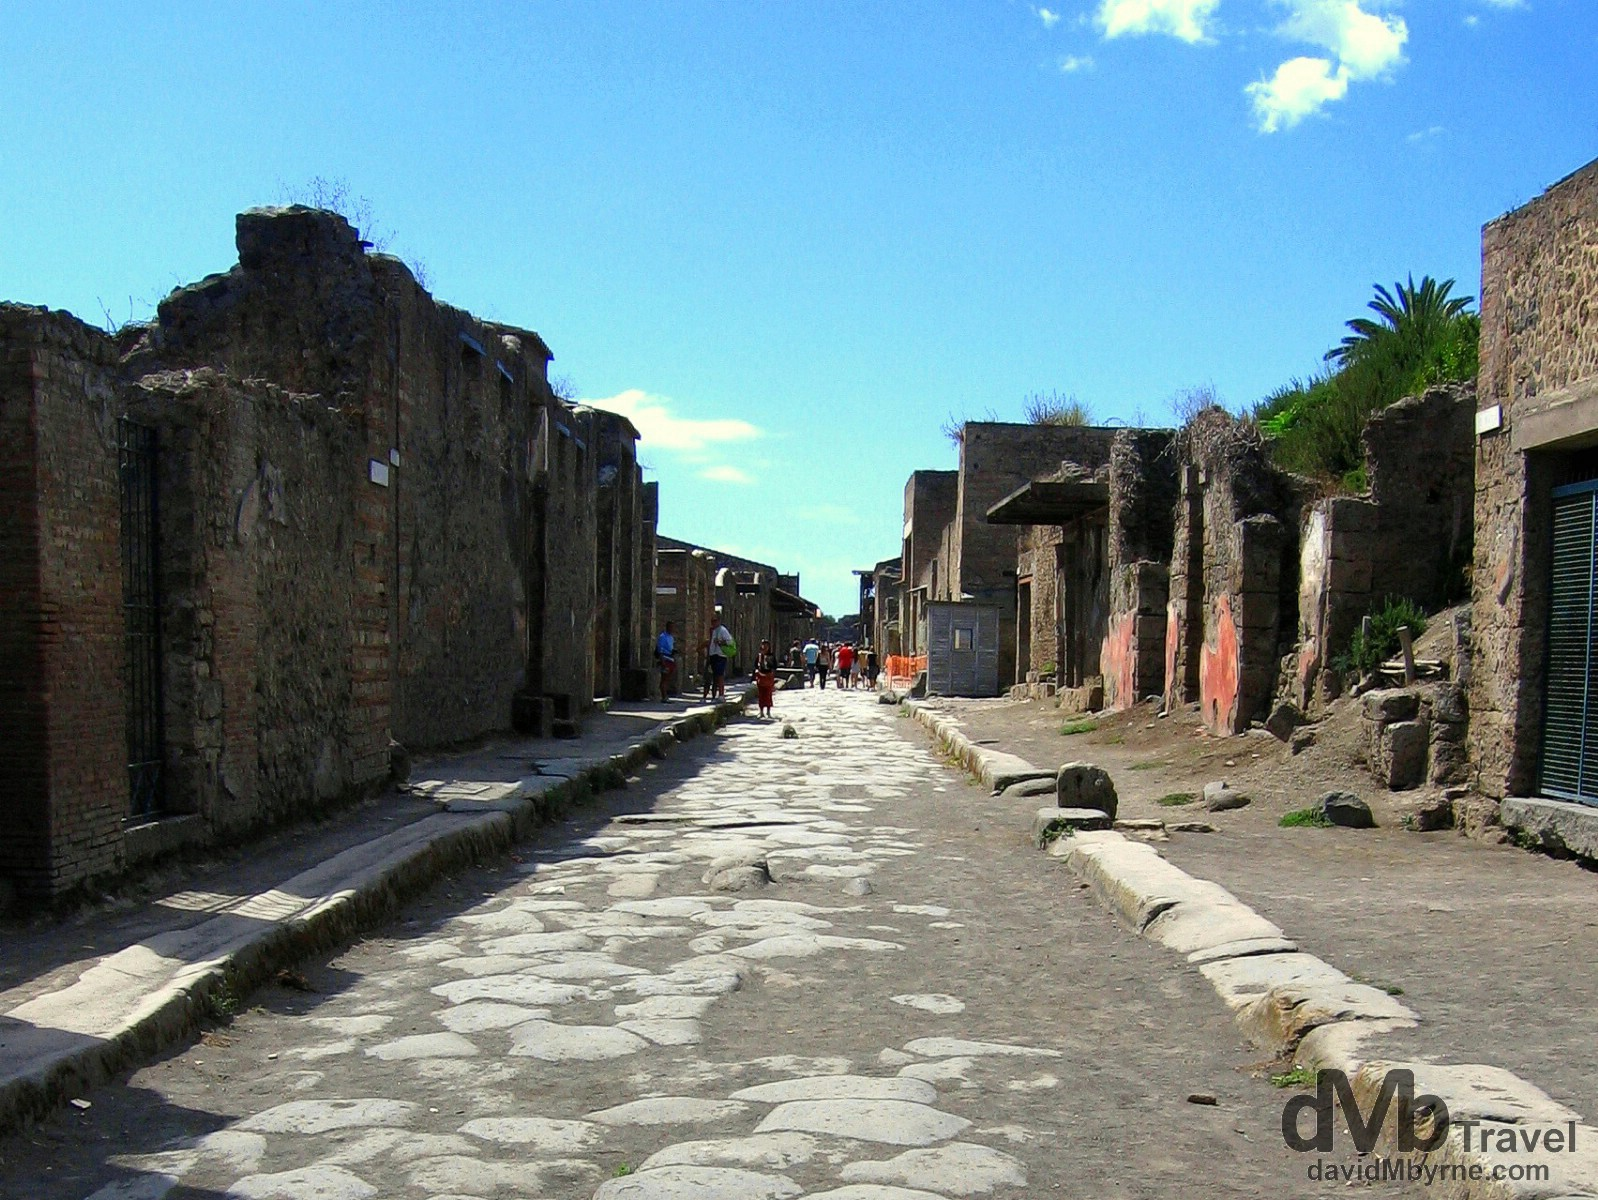 Via dell Abbondanza, one of the main streets in the Roman ruins of Pompeii, Campania, Italy. September 5th, 2007.